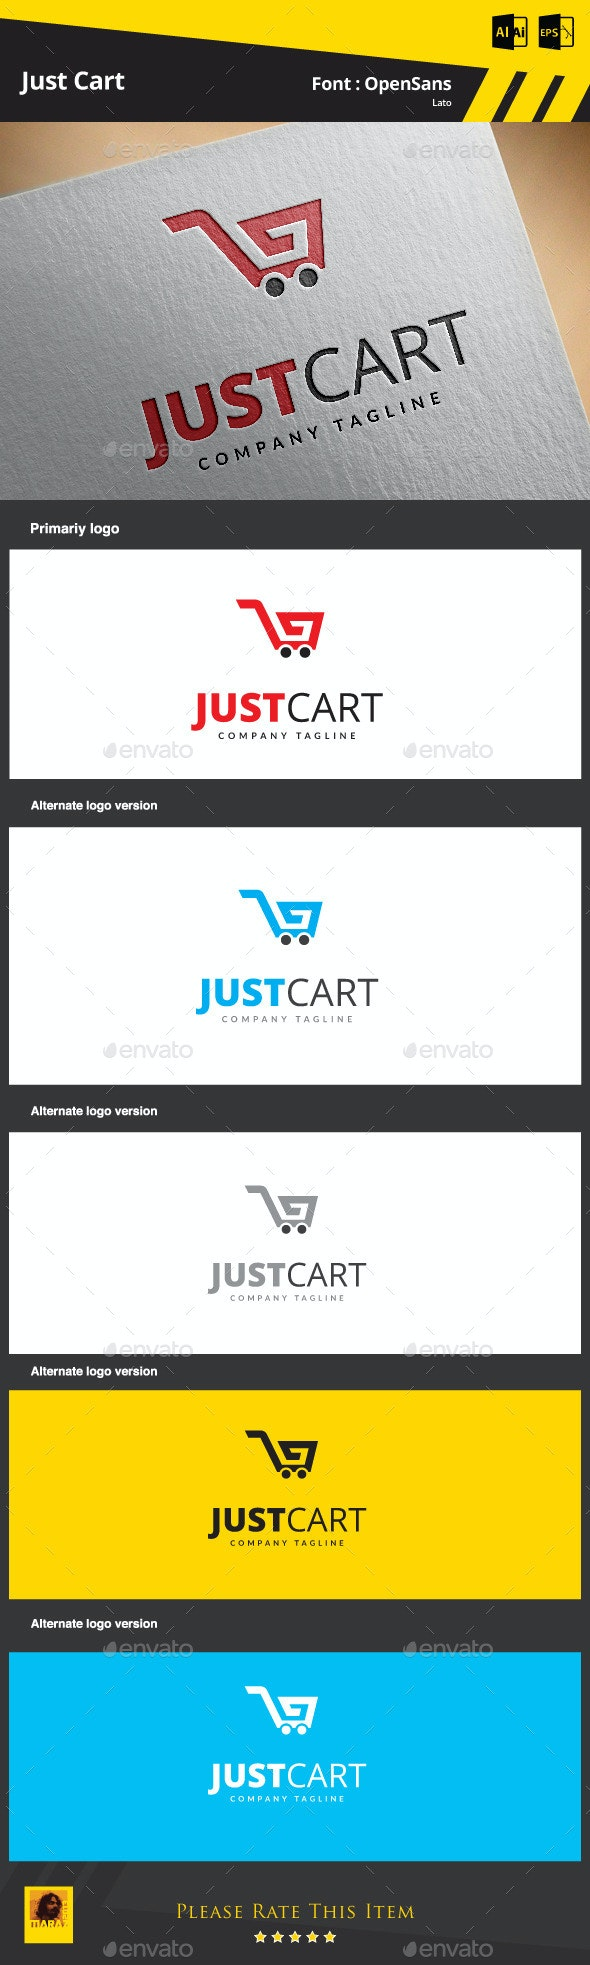 Just Cart - Symbols Logo Templates